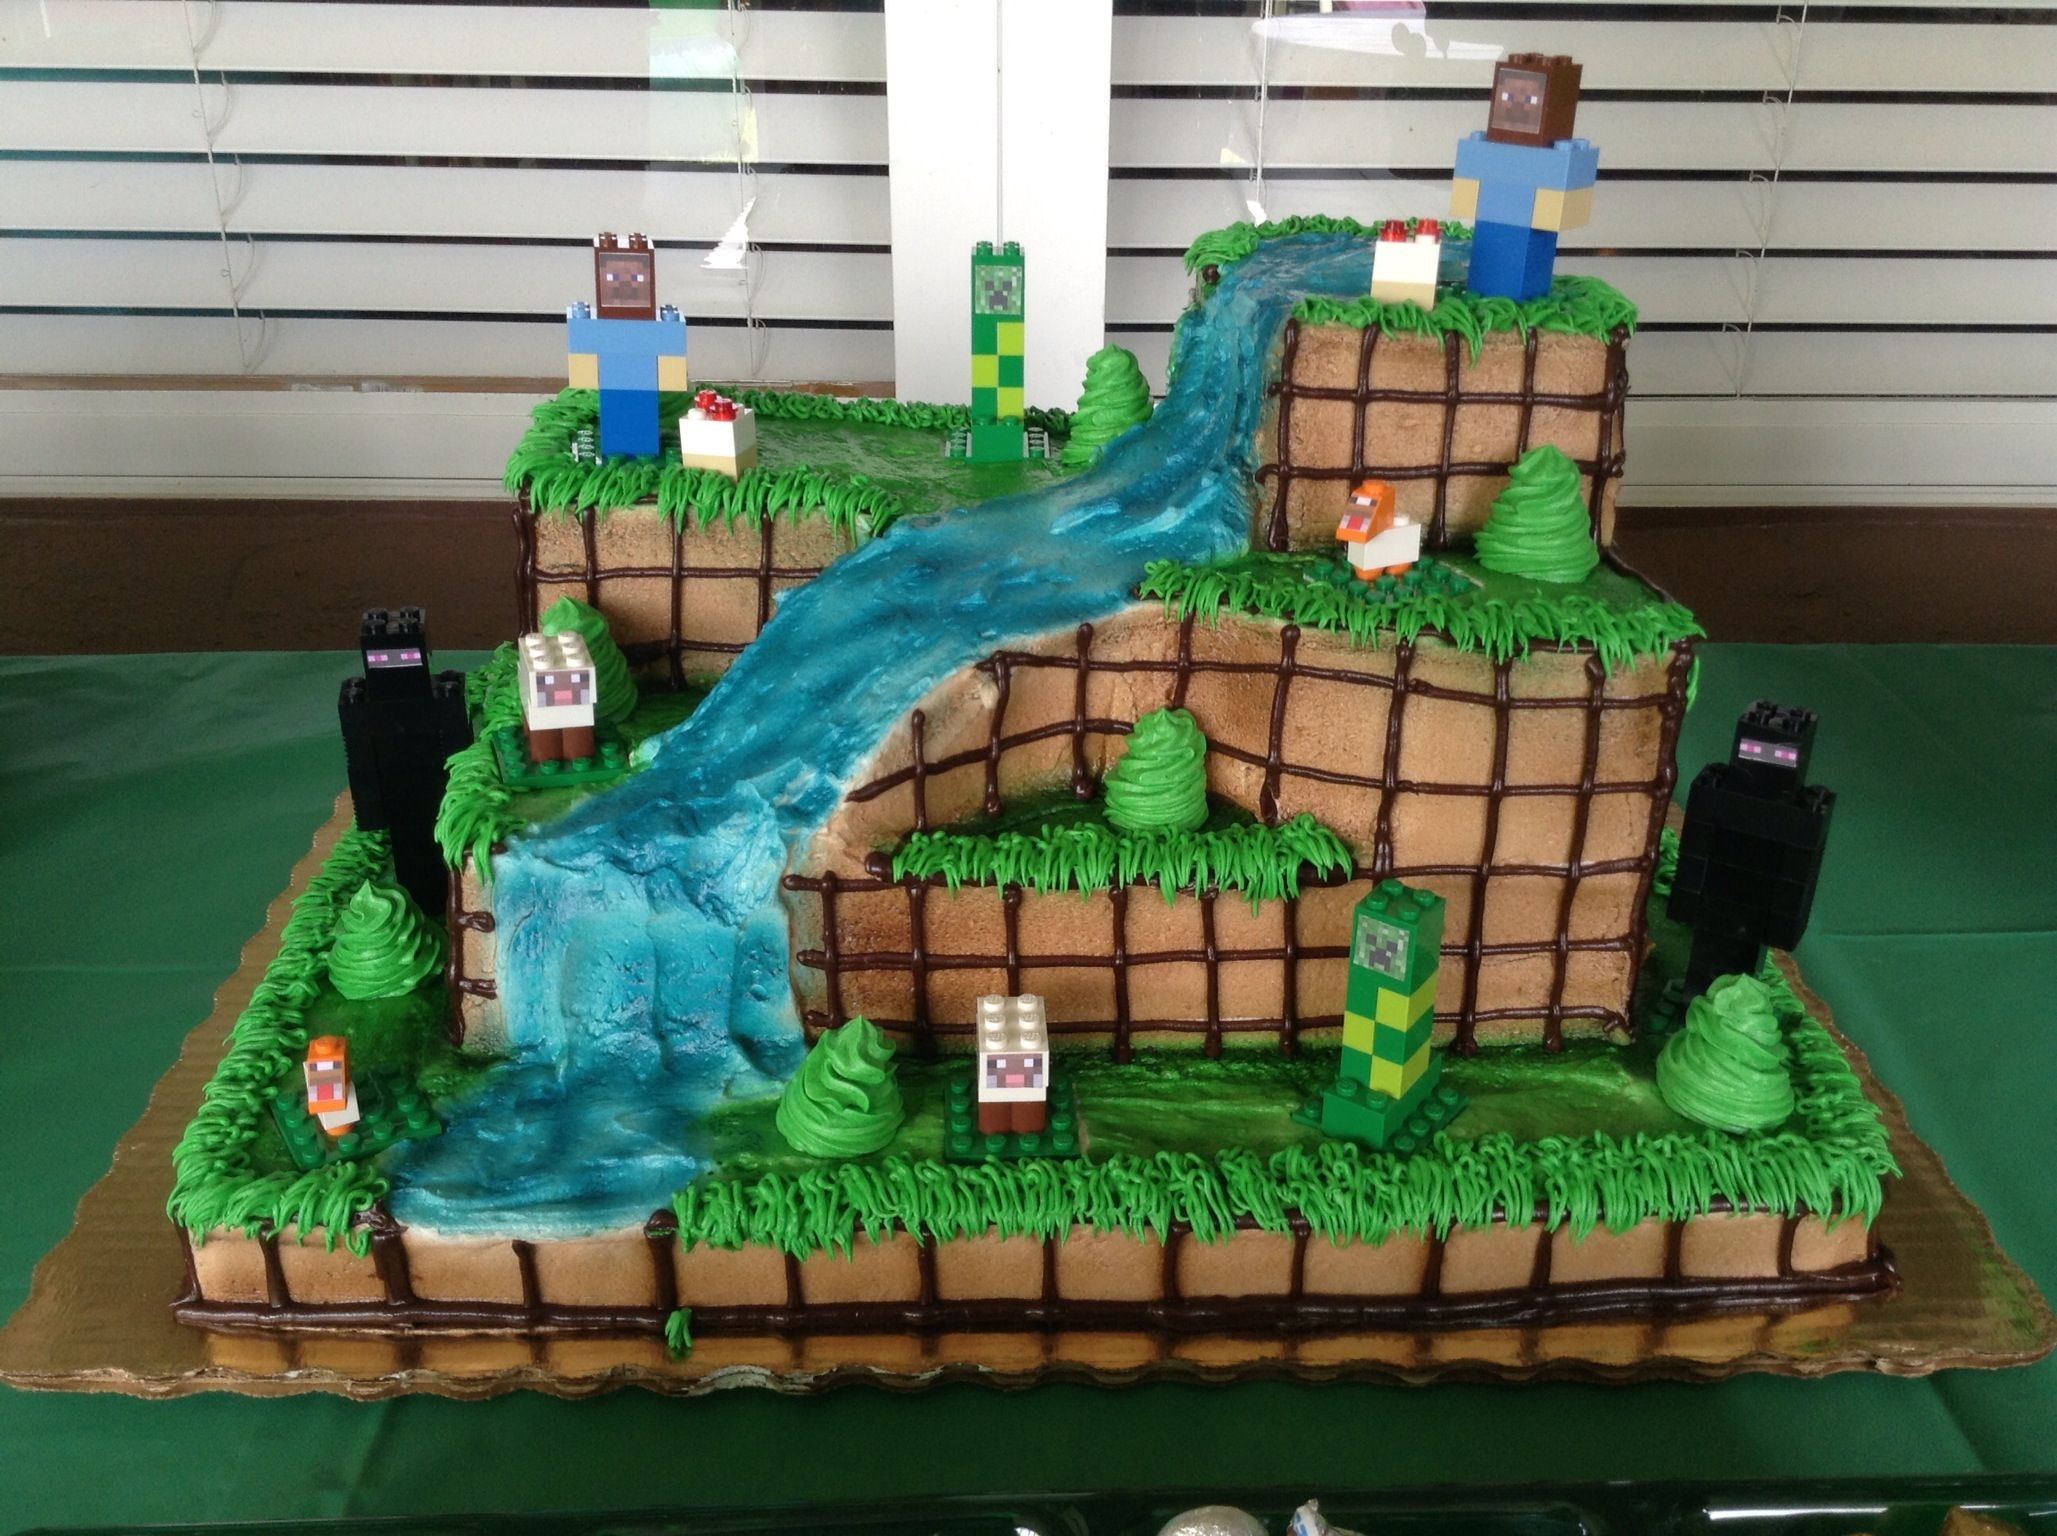 Minecraft Cake Customized At Publix Then Added My Own Lego Builds Please